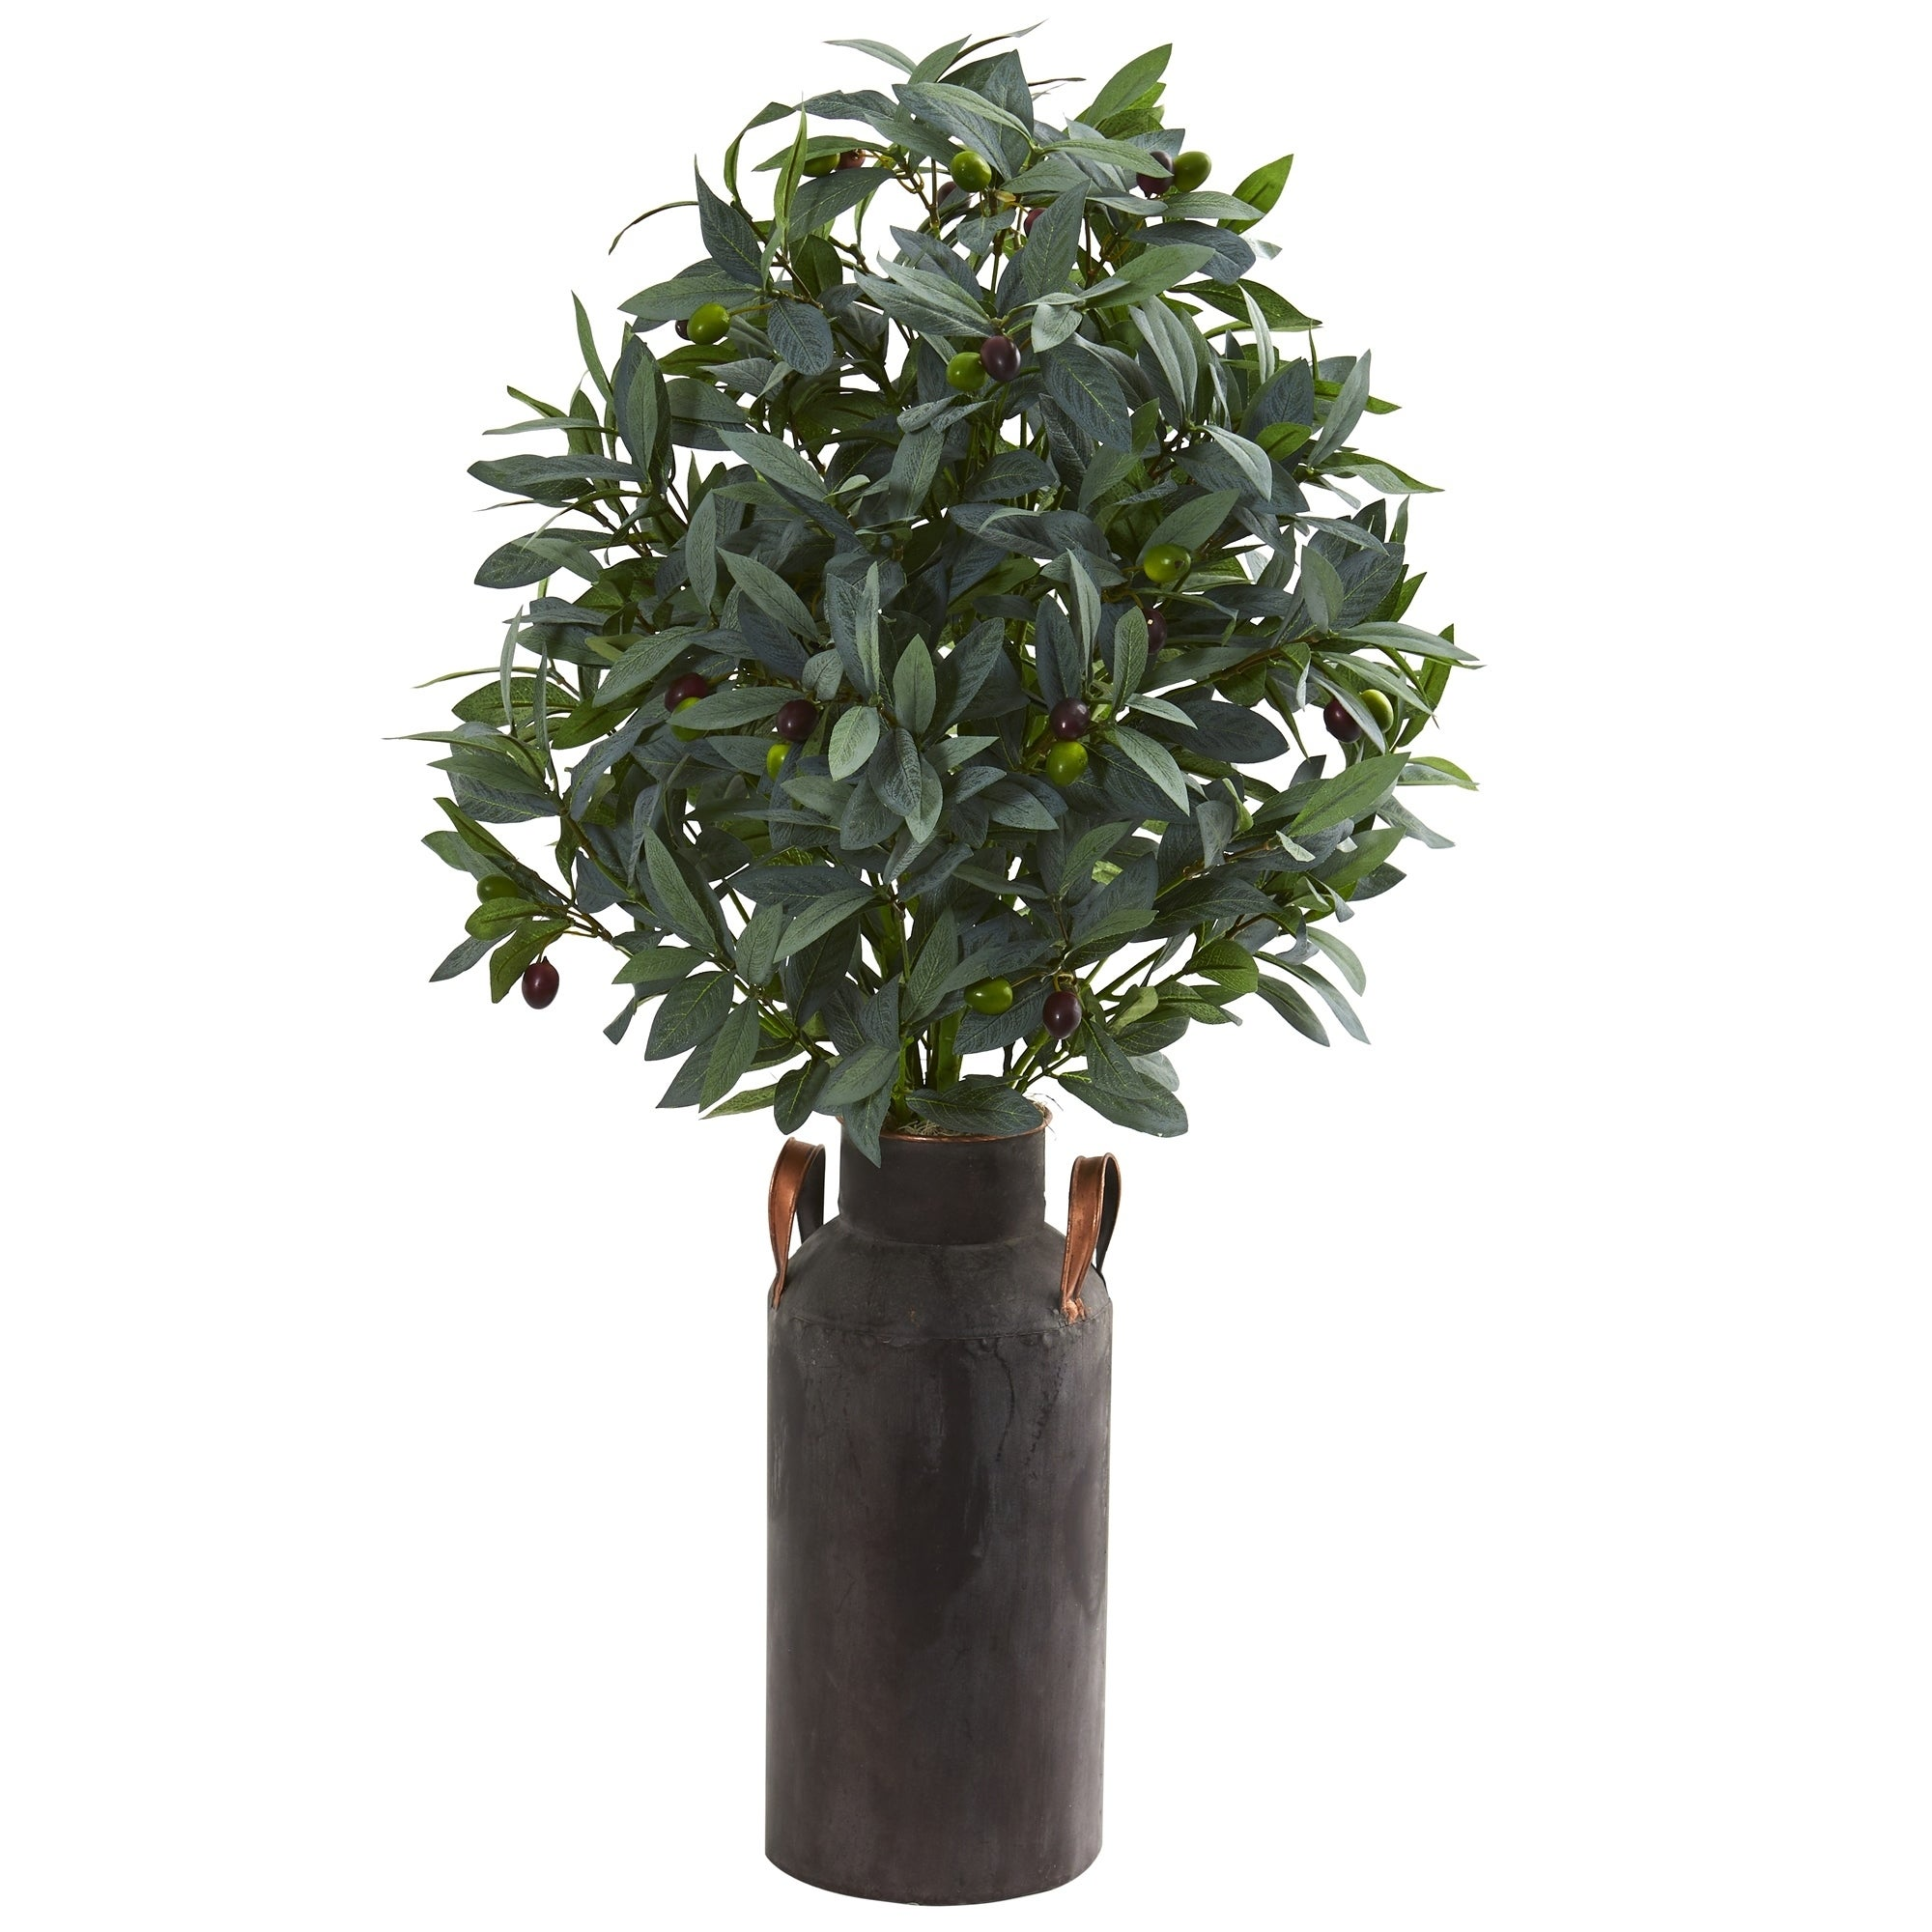 31 Olive with Berries Artificial Plant in Decorative Canister